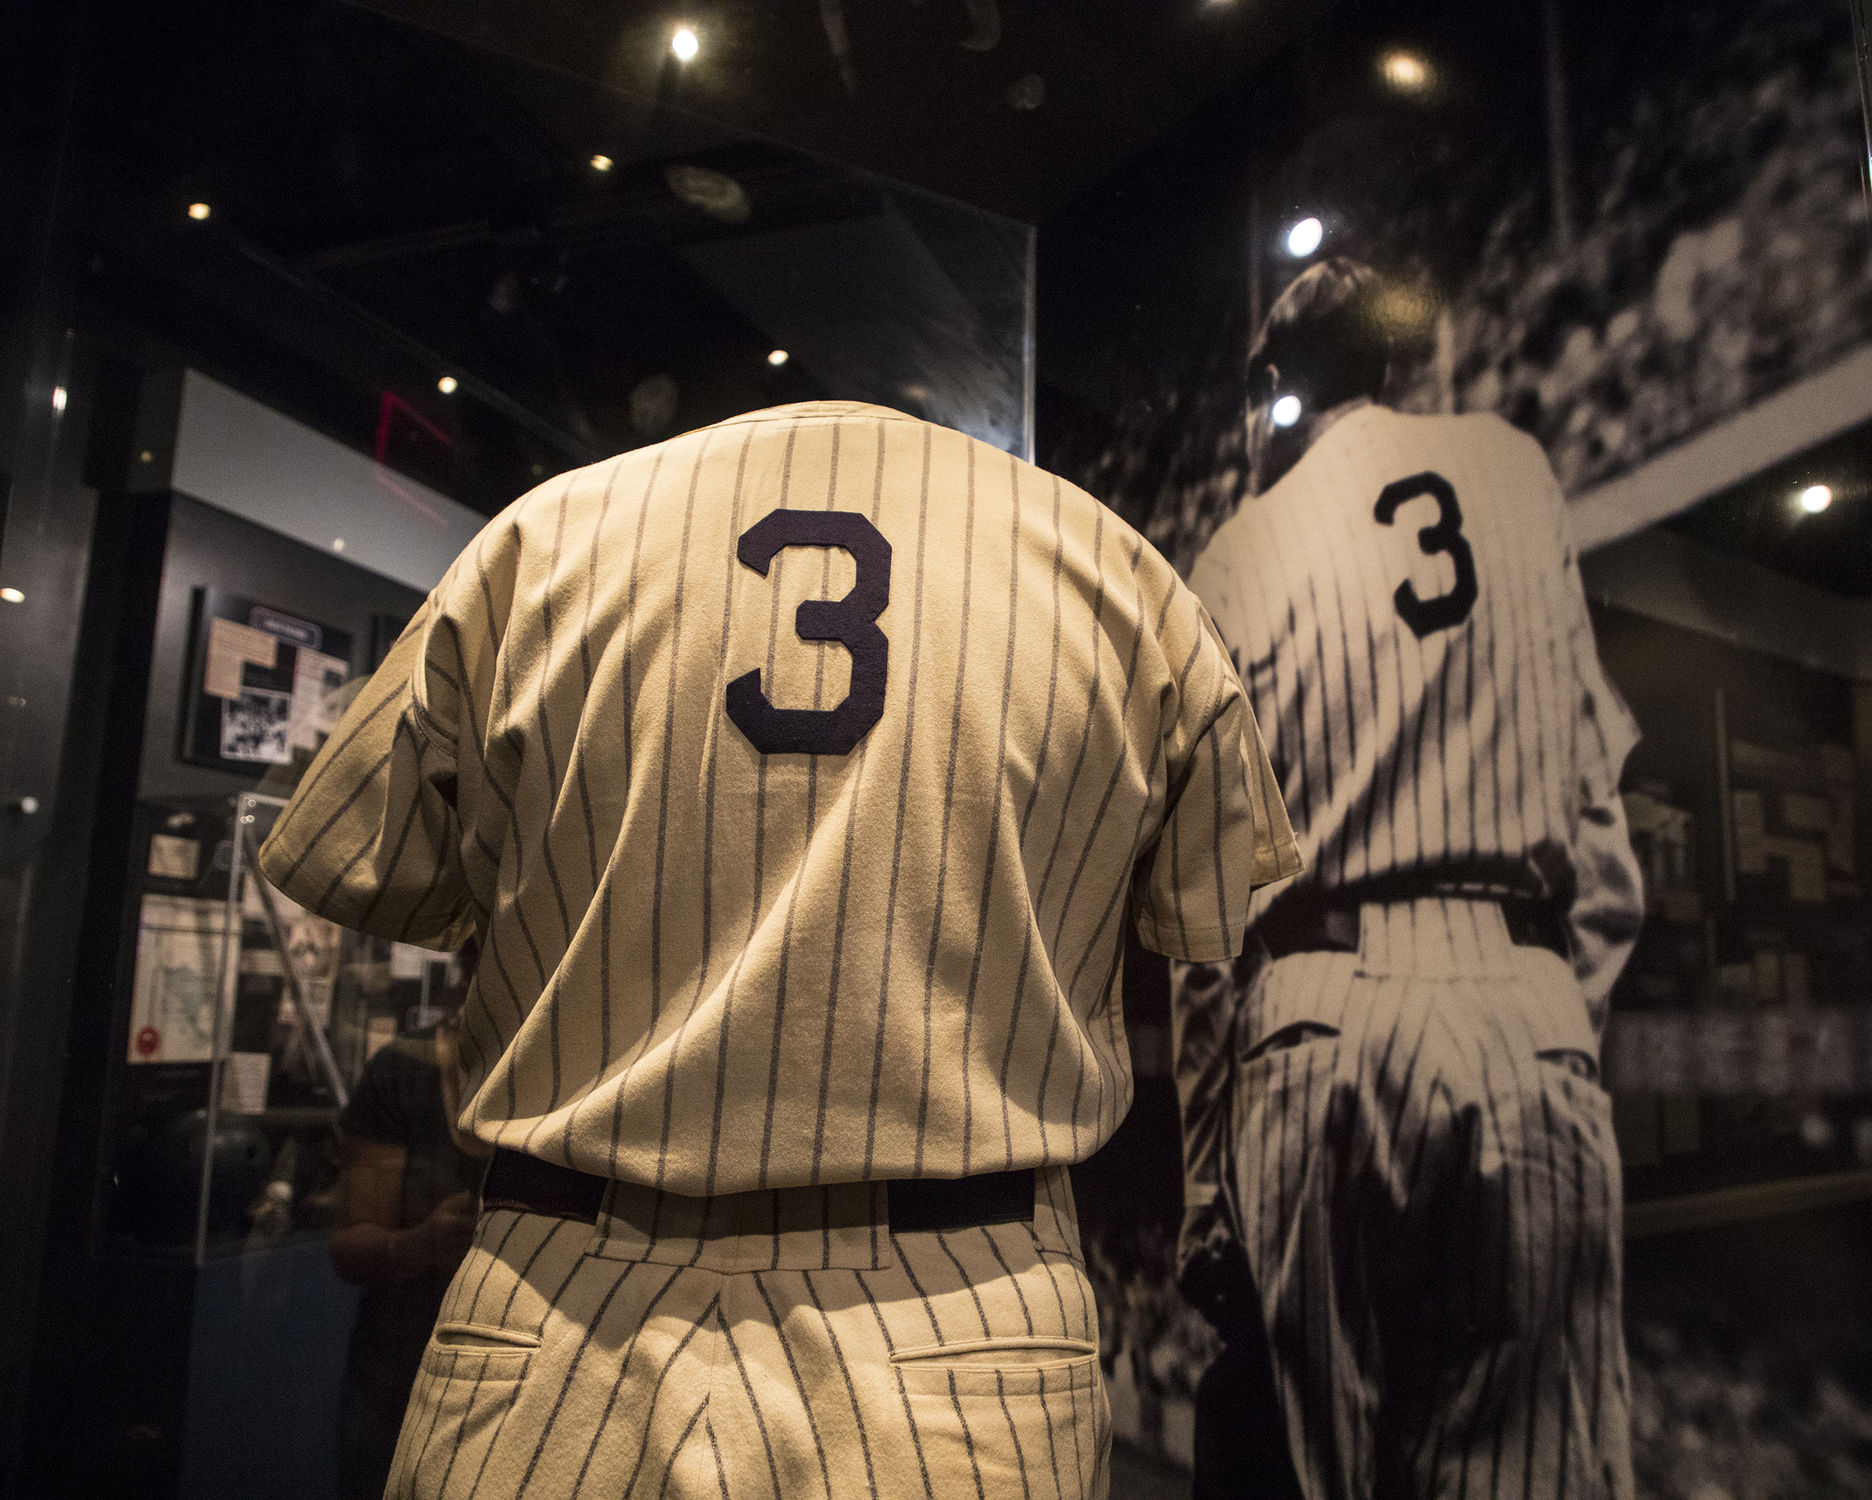 babe ruth jersey youth